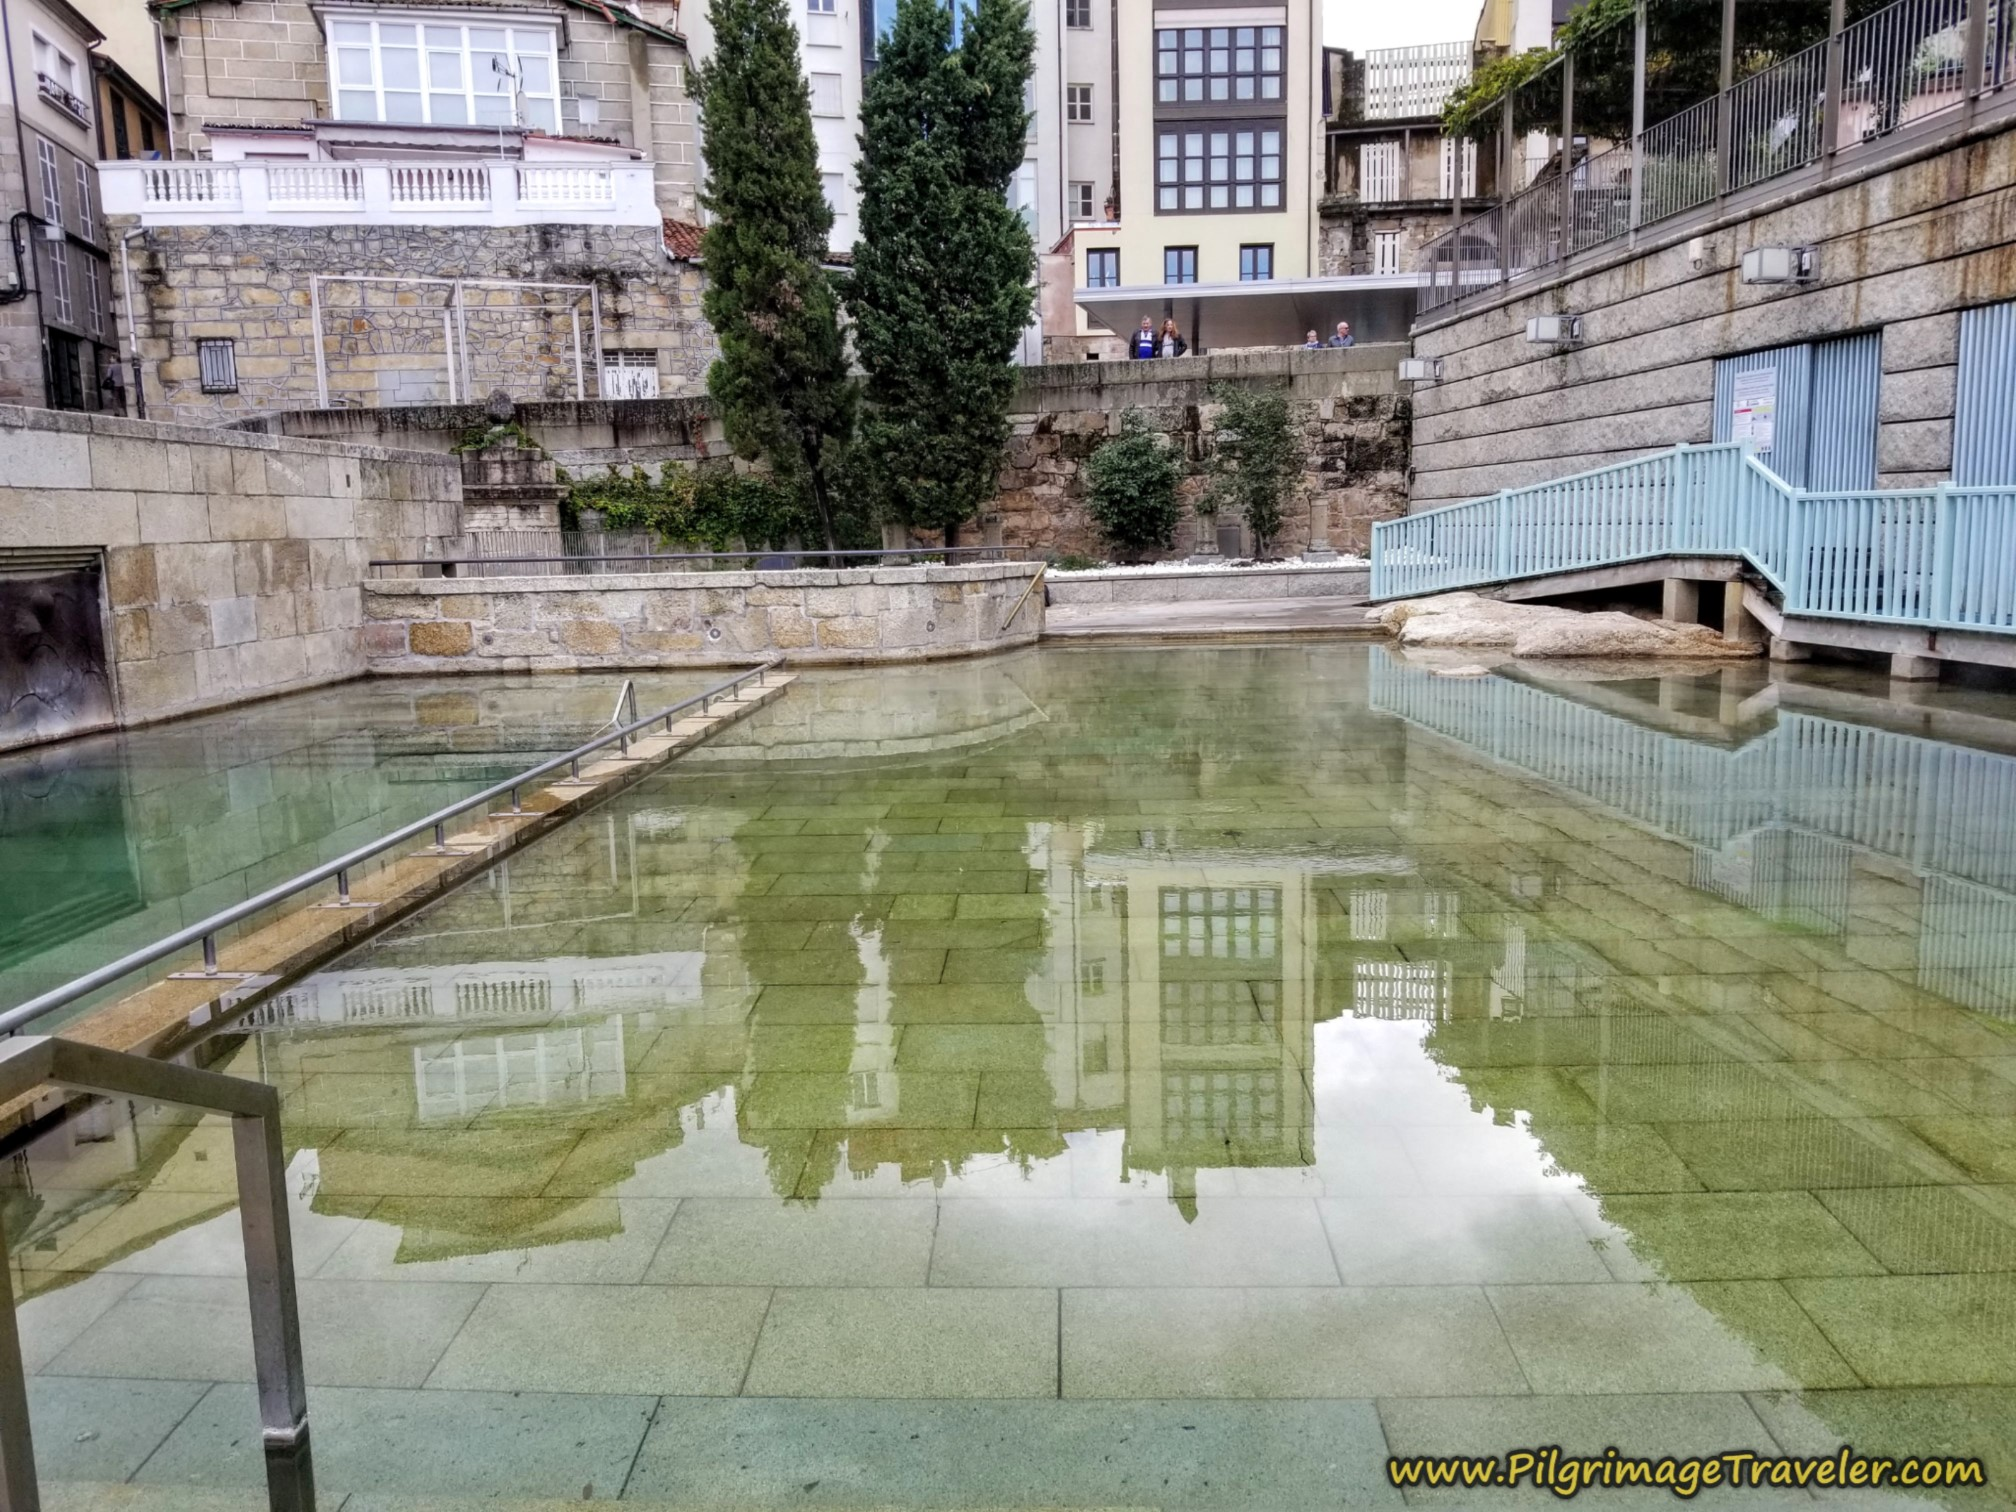 As Burgos Public Thermal Pools in Ourense on the Camino Sanabrés